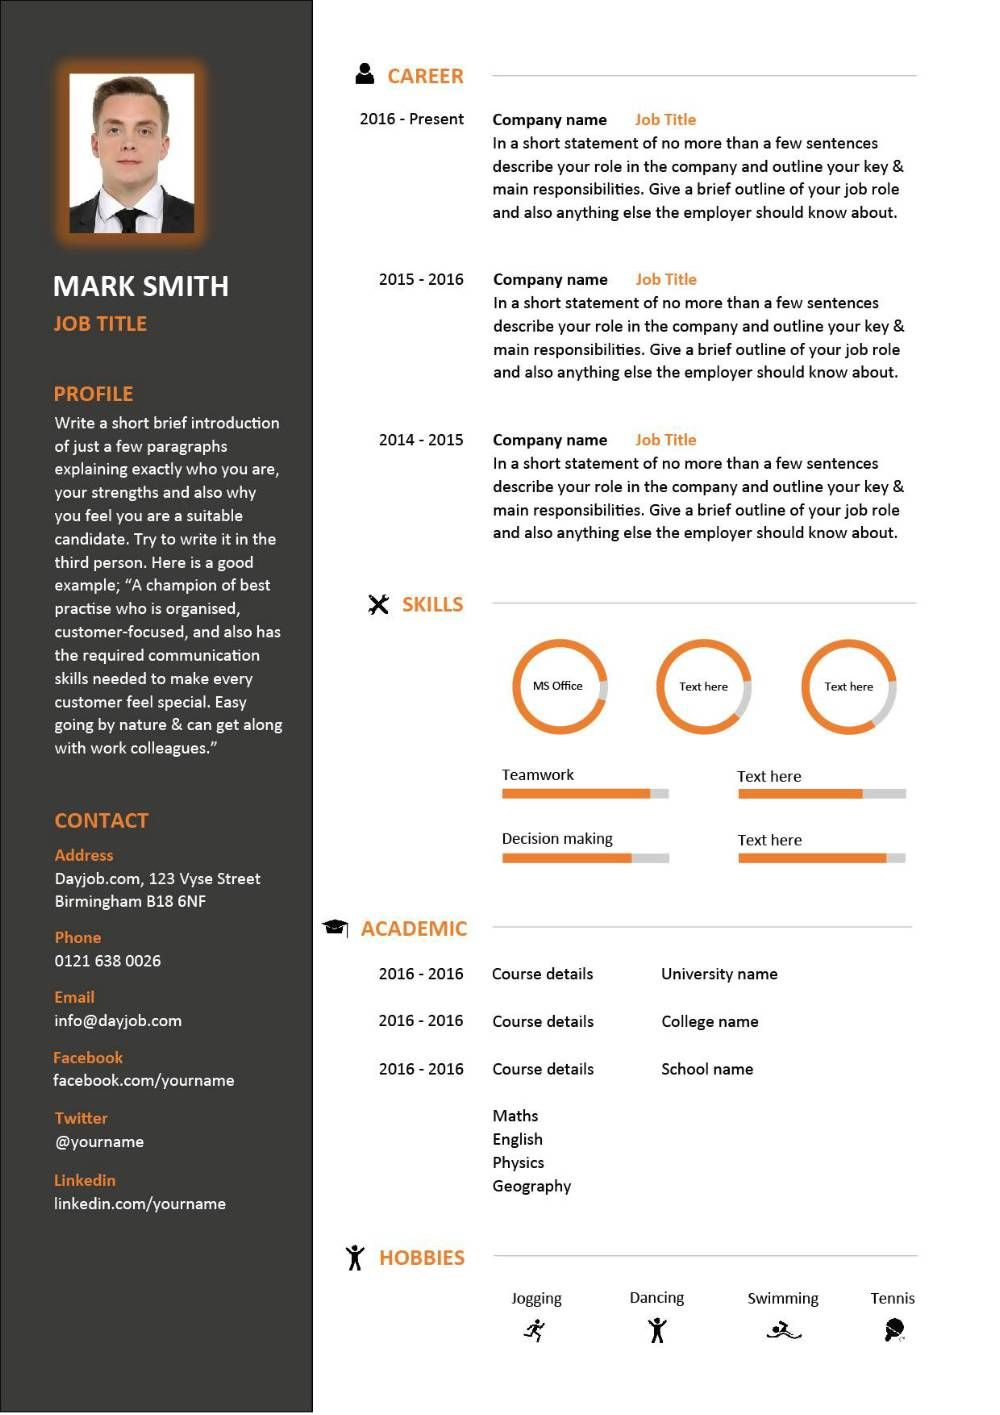 Latest CV template designs, Resume, layout, font, creative